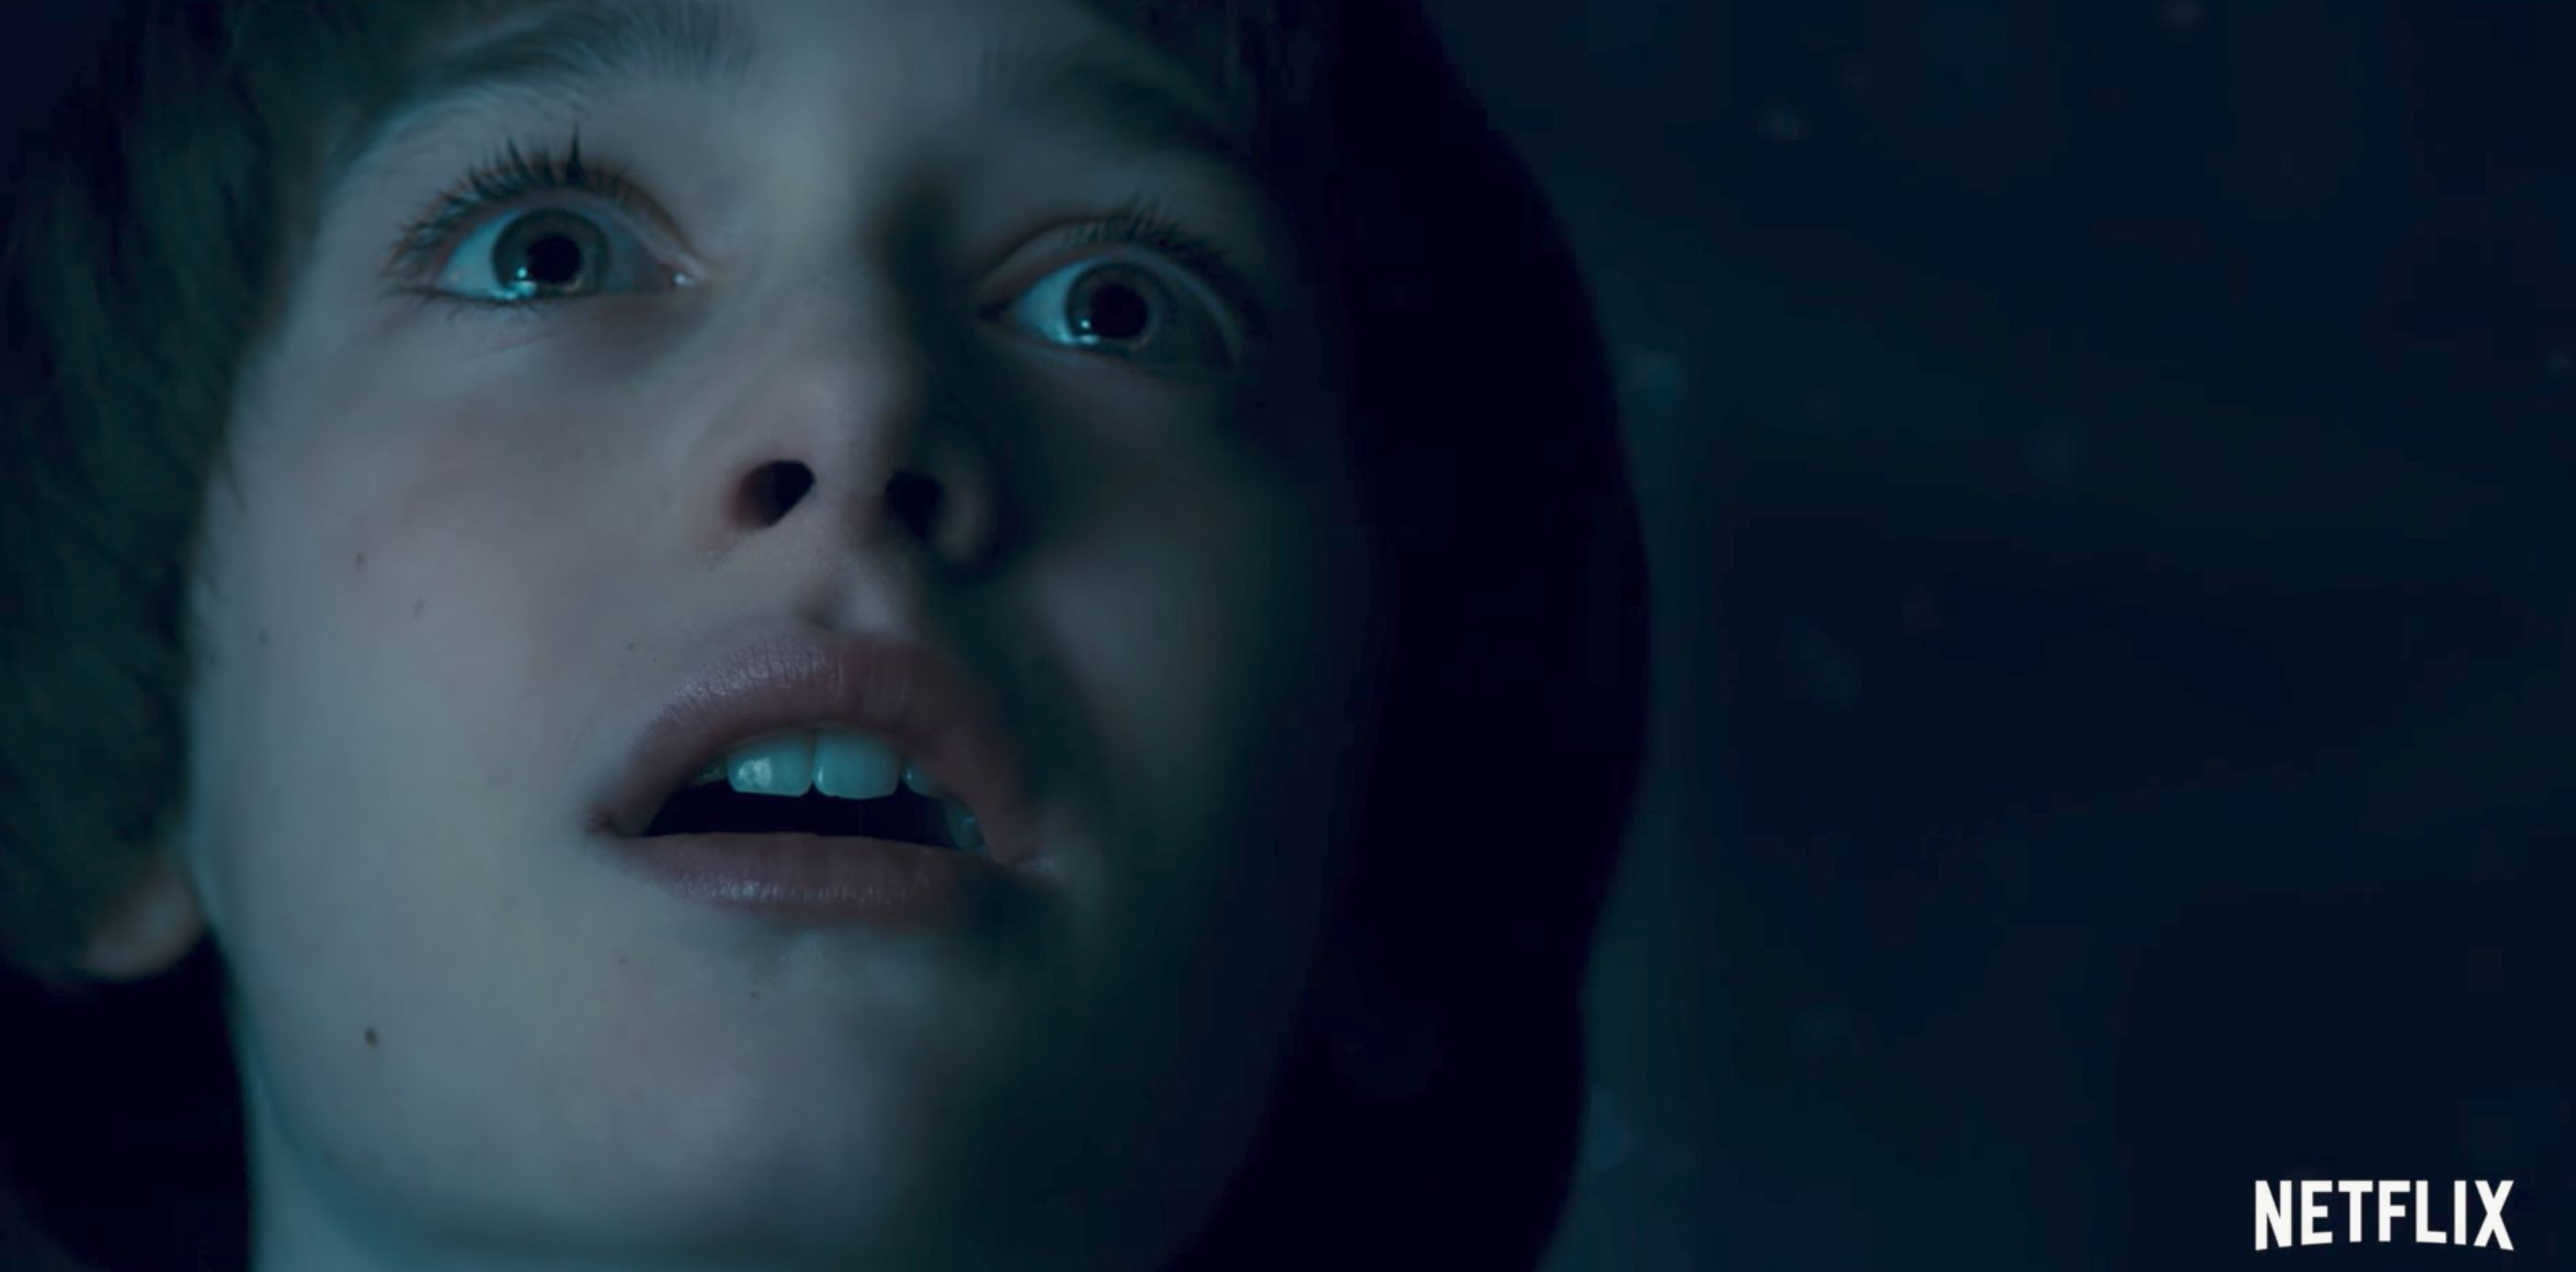 'Stranger Things' Trailer May Support Totally Upside Down